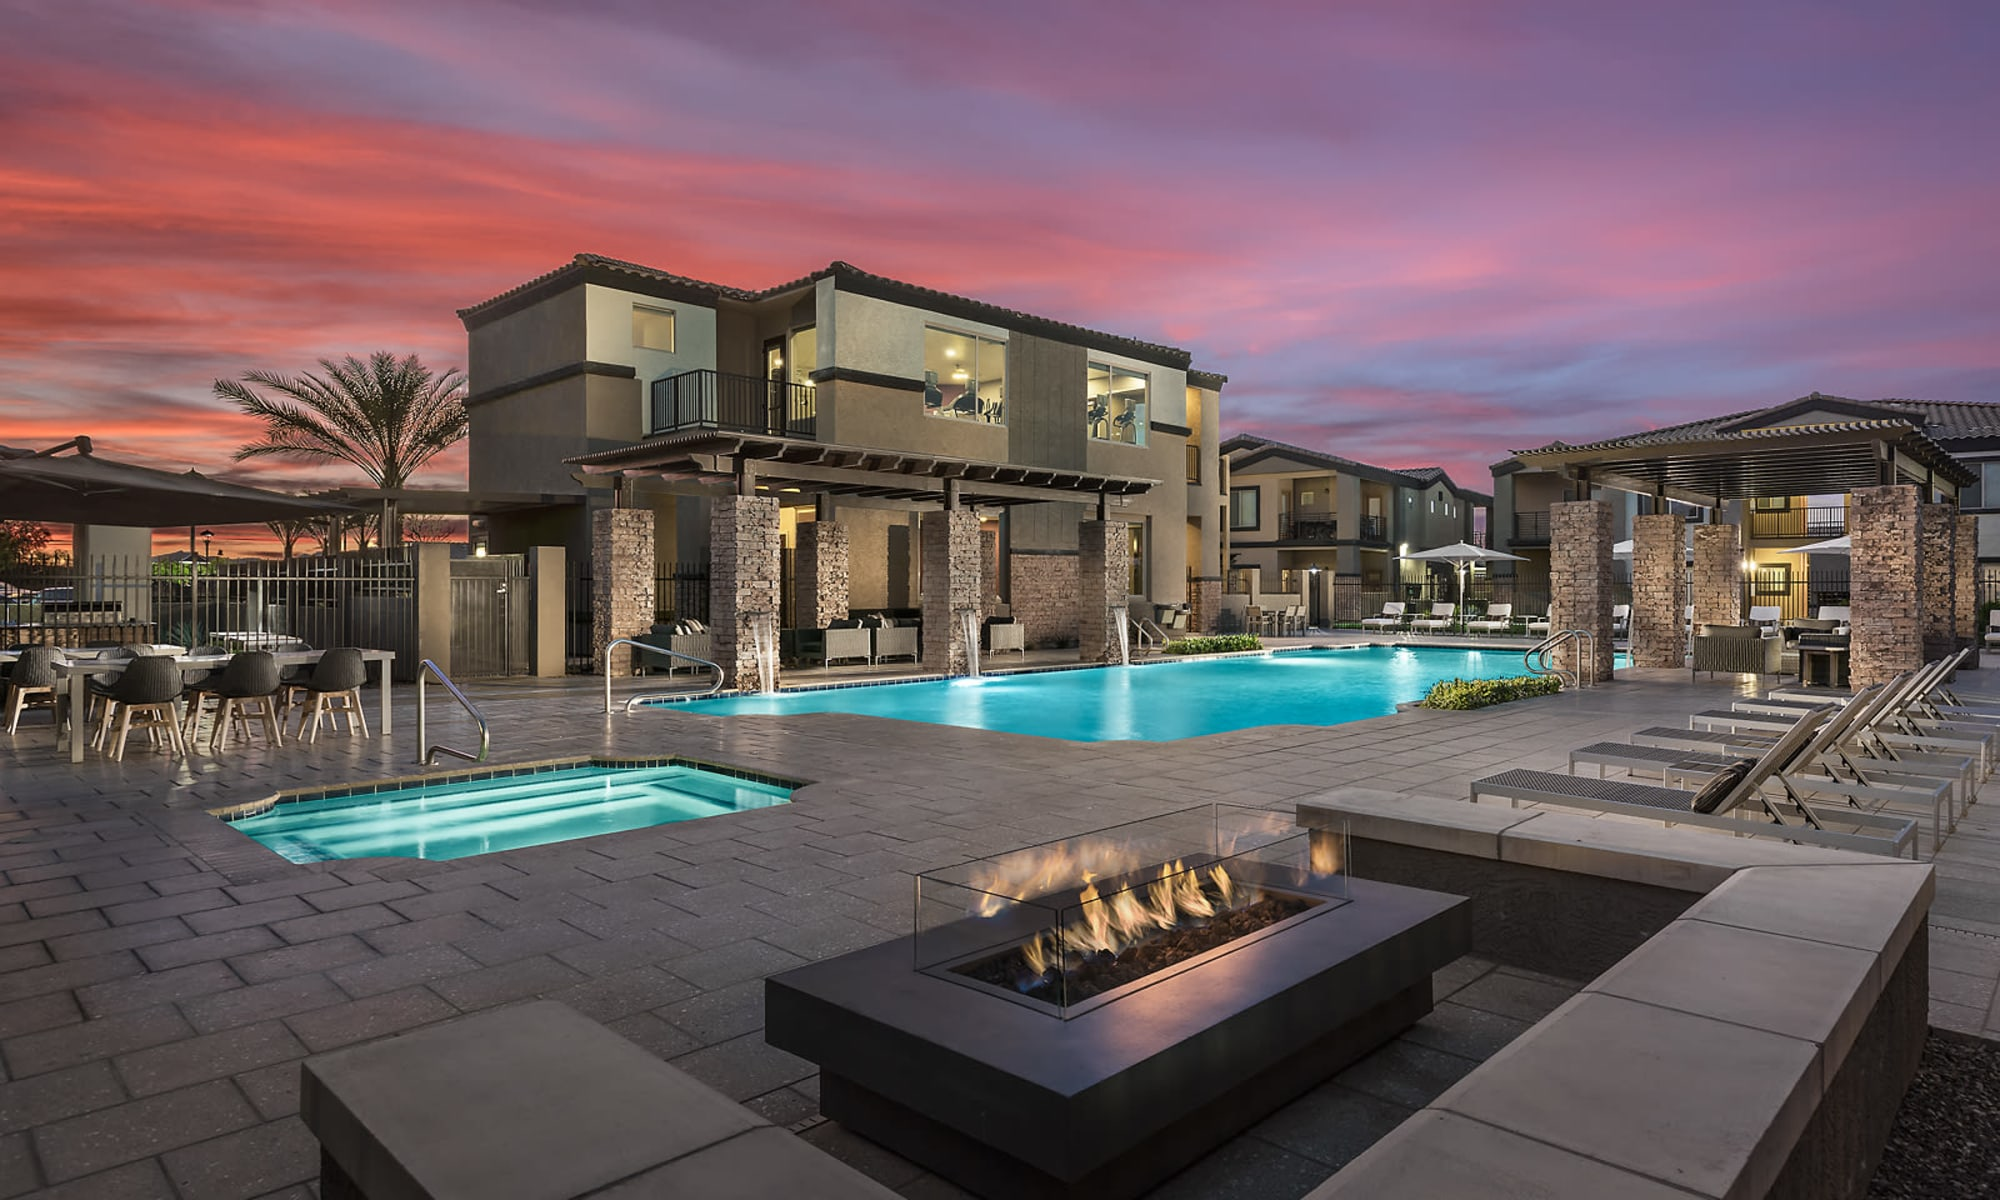 Swimming pool  and lounge area at The Maxx 159 in Goodyear, Arizona